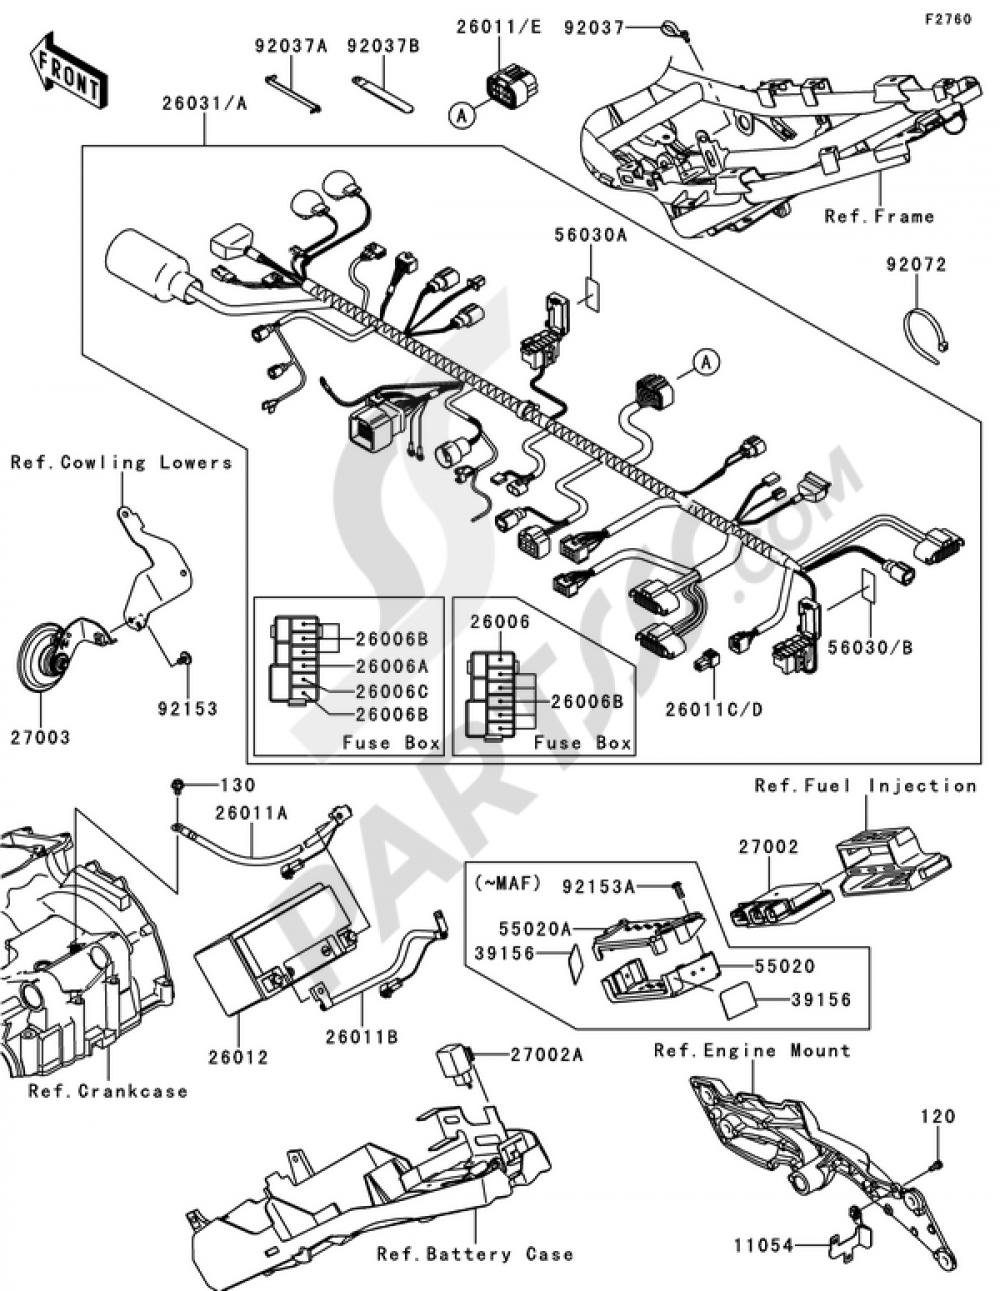 Chassis Electrical Equipment Kawasaki Z750 ABS 2008Partsss